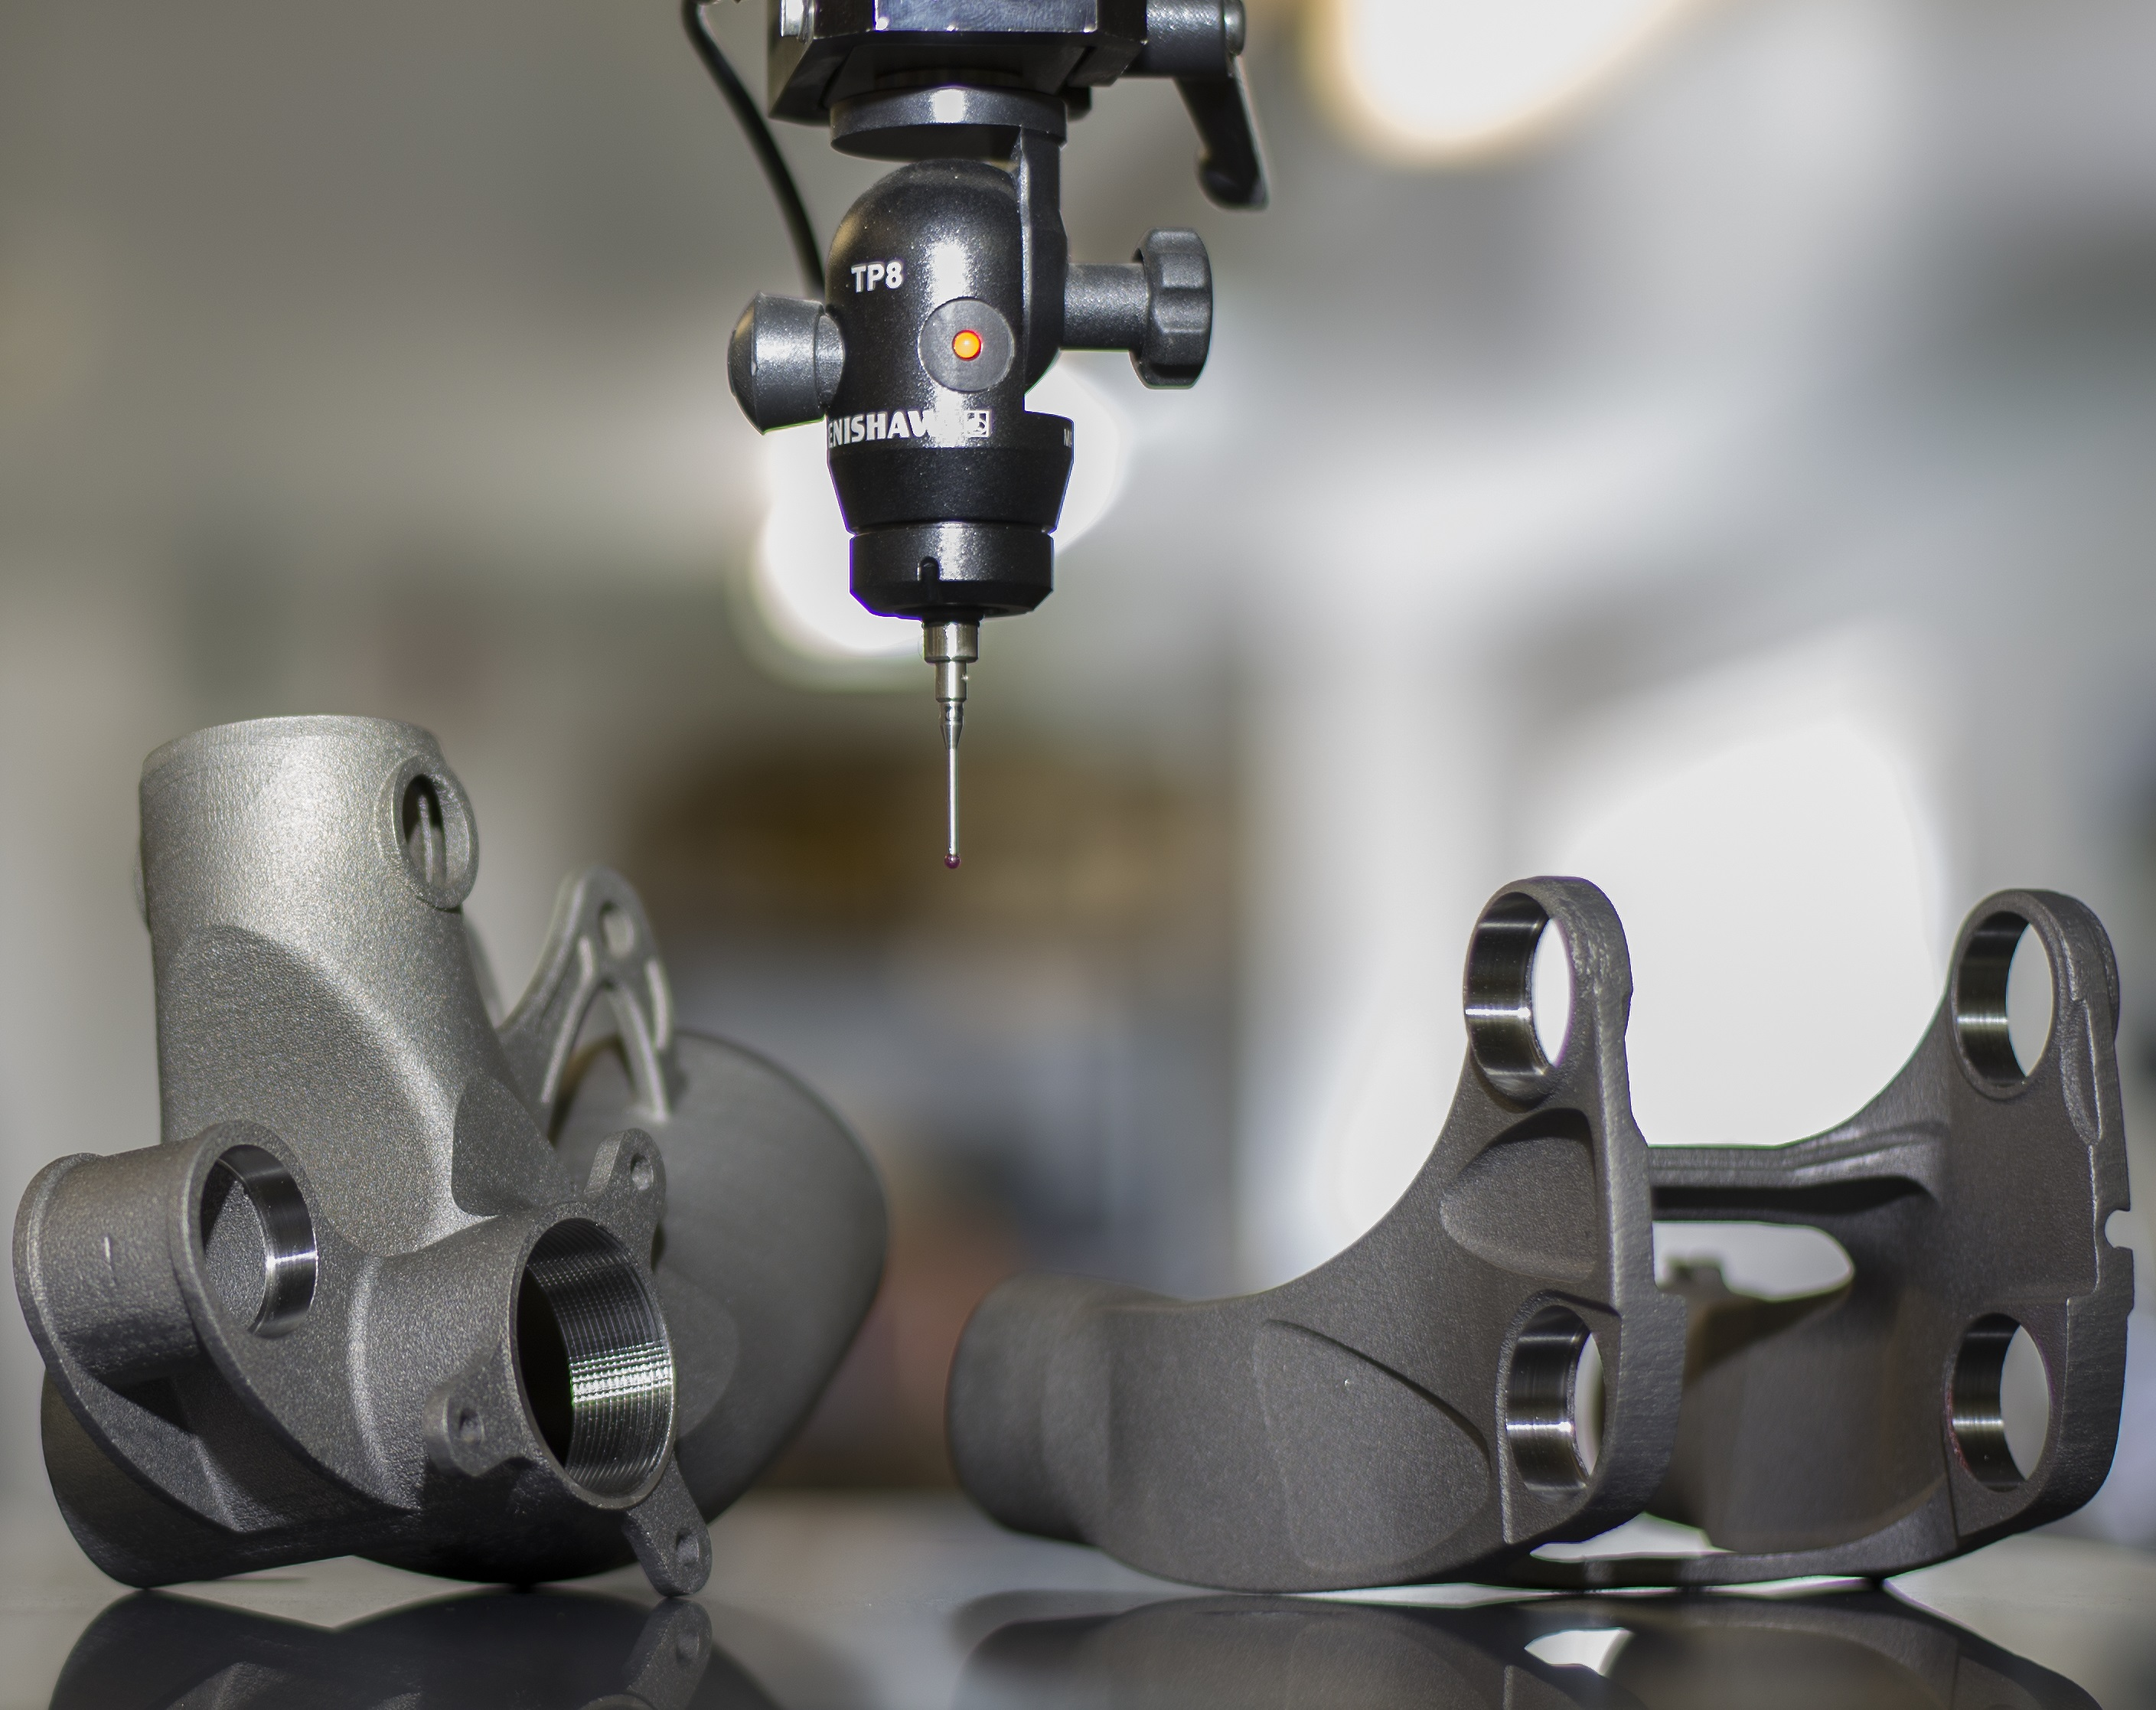 Robot Bike Co. - The final stage in the production of the titanium parts is inspection using Renishaw probes